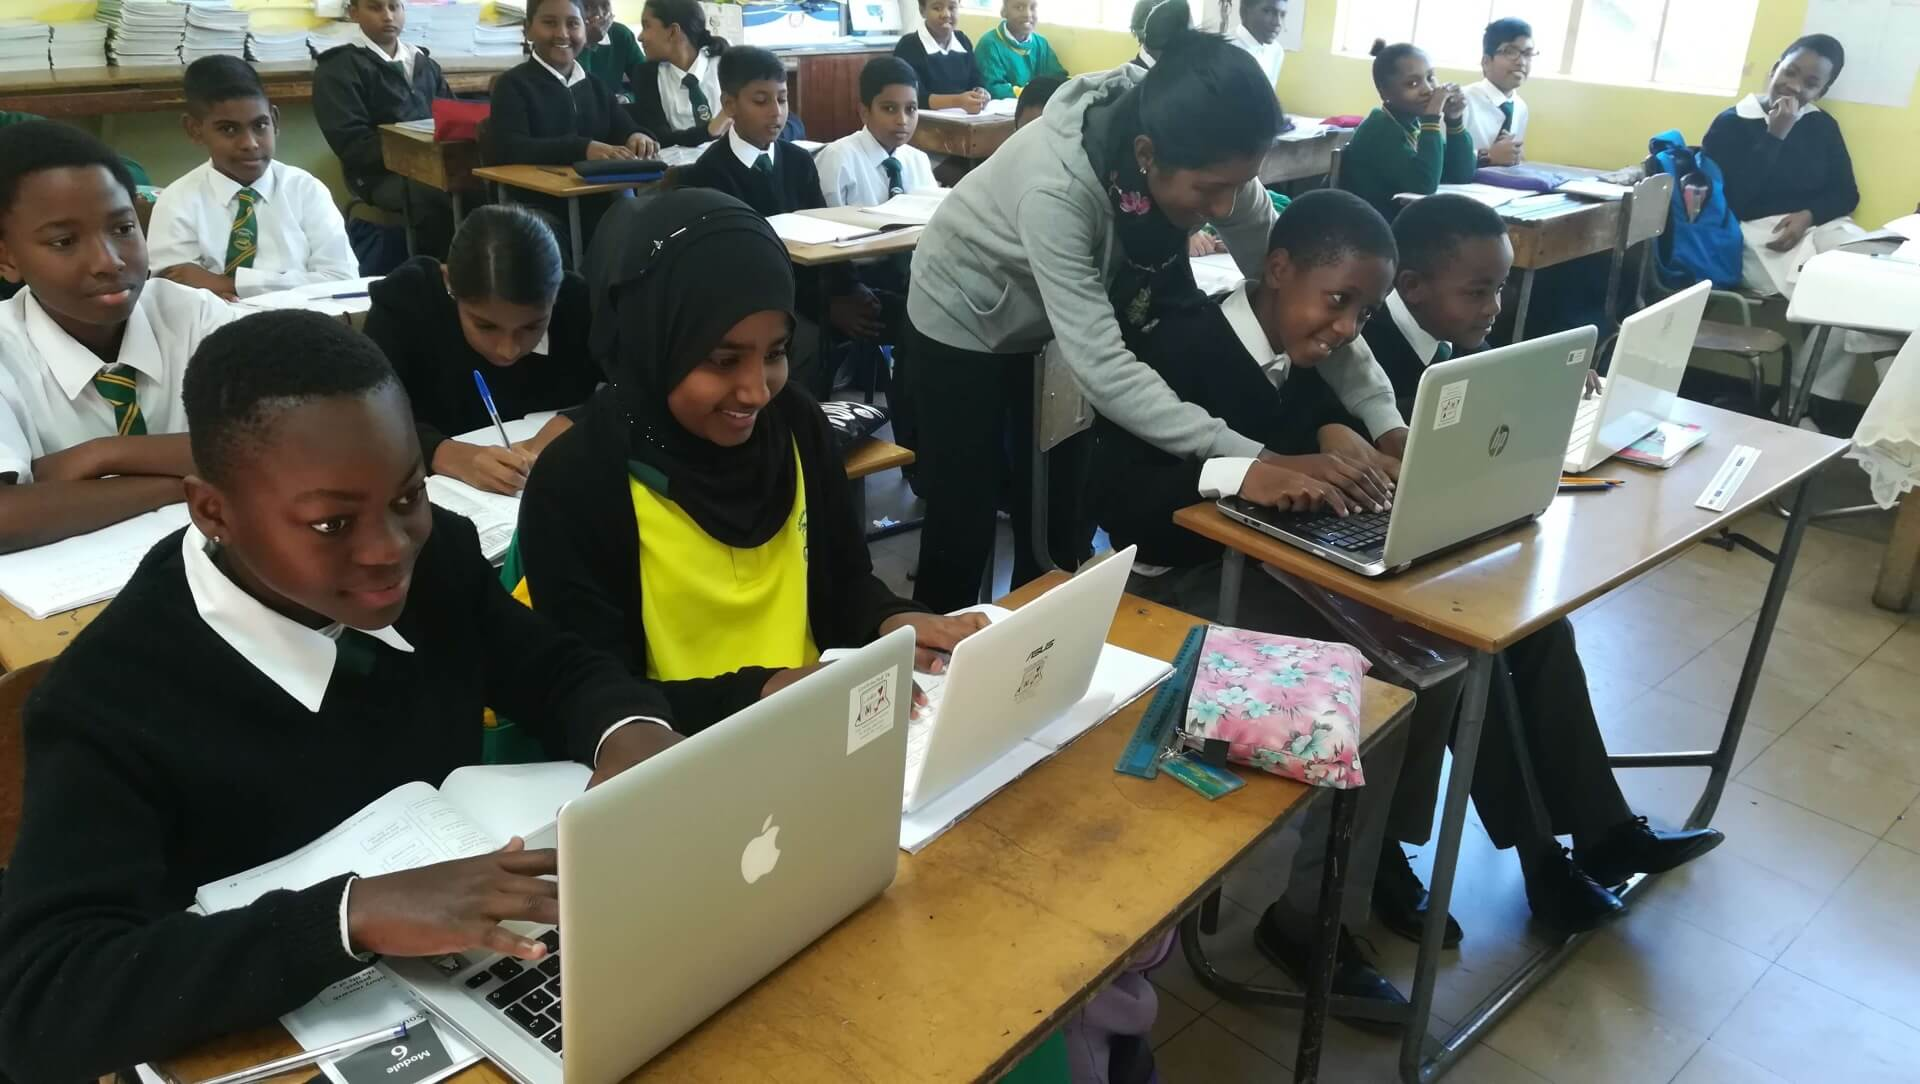 School children in South Africa are happy about their donated lapotops